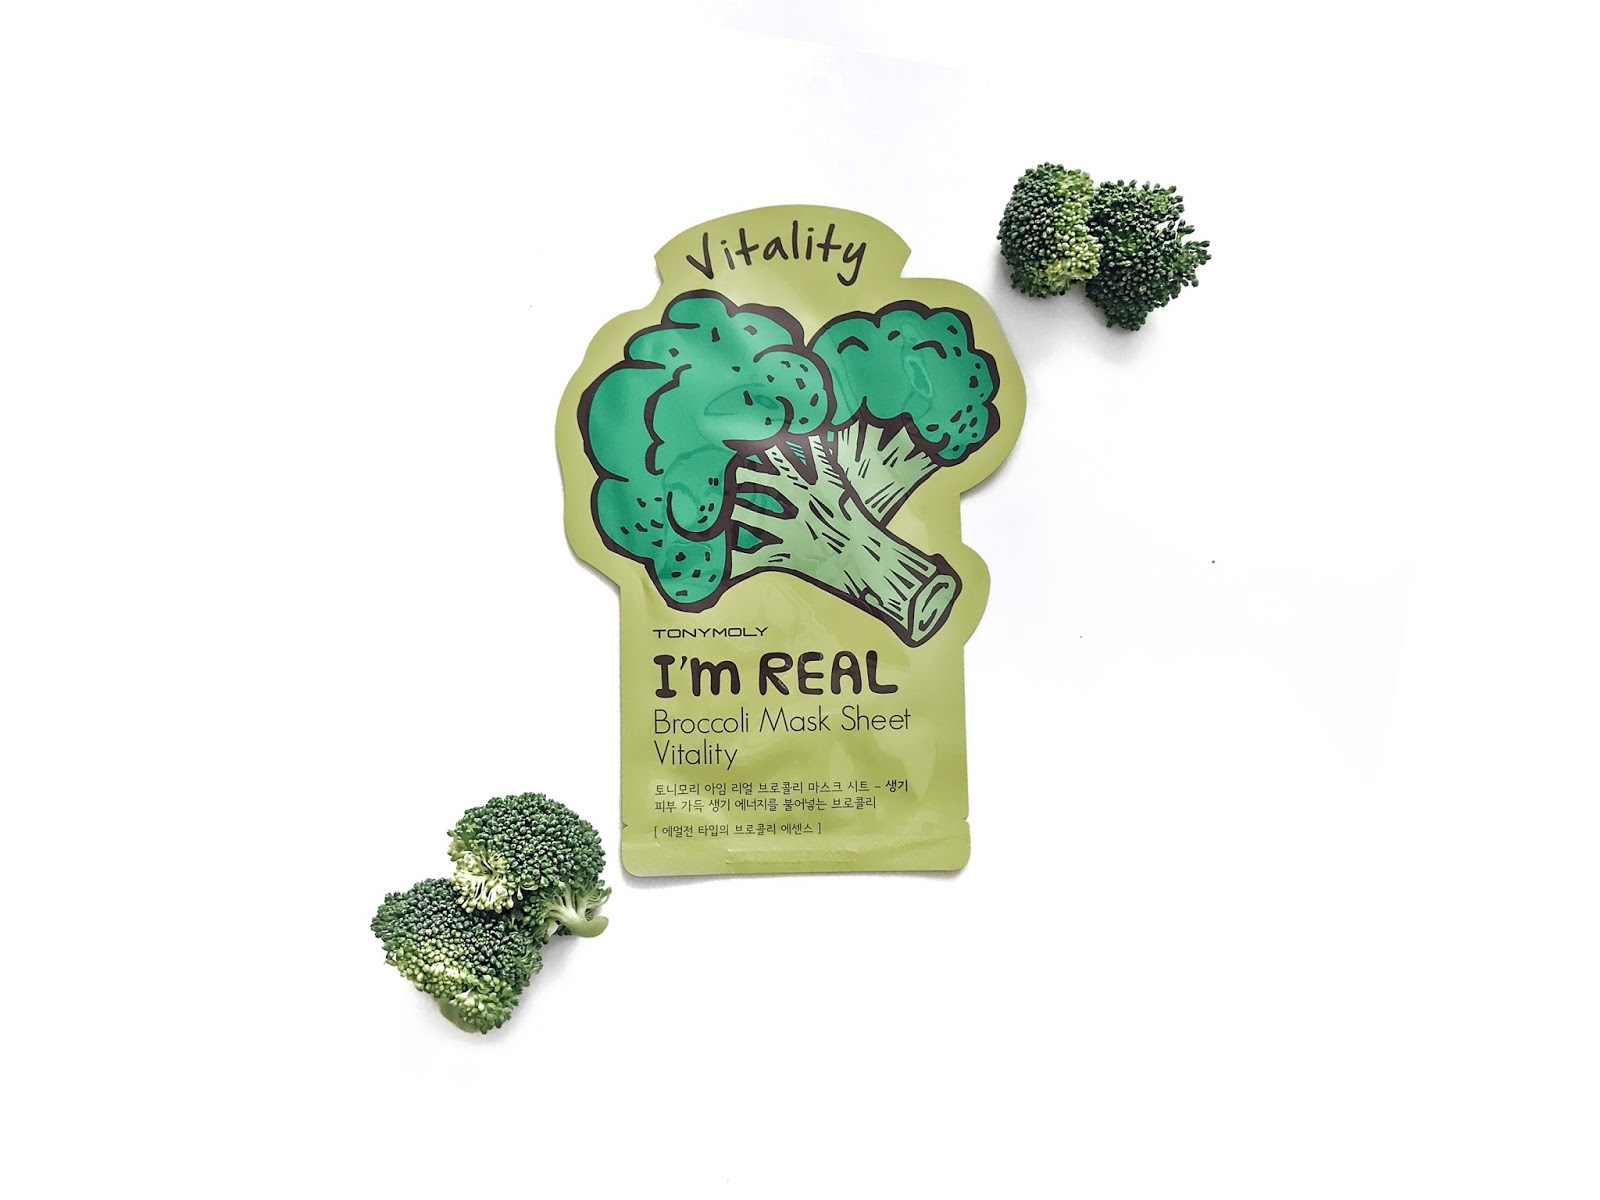 Tony Moly It's Real Broccoli Vitality Sheet Mask reviewed by The Jen Project